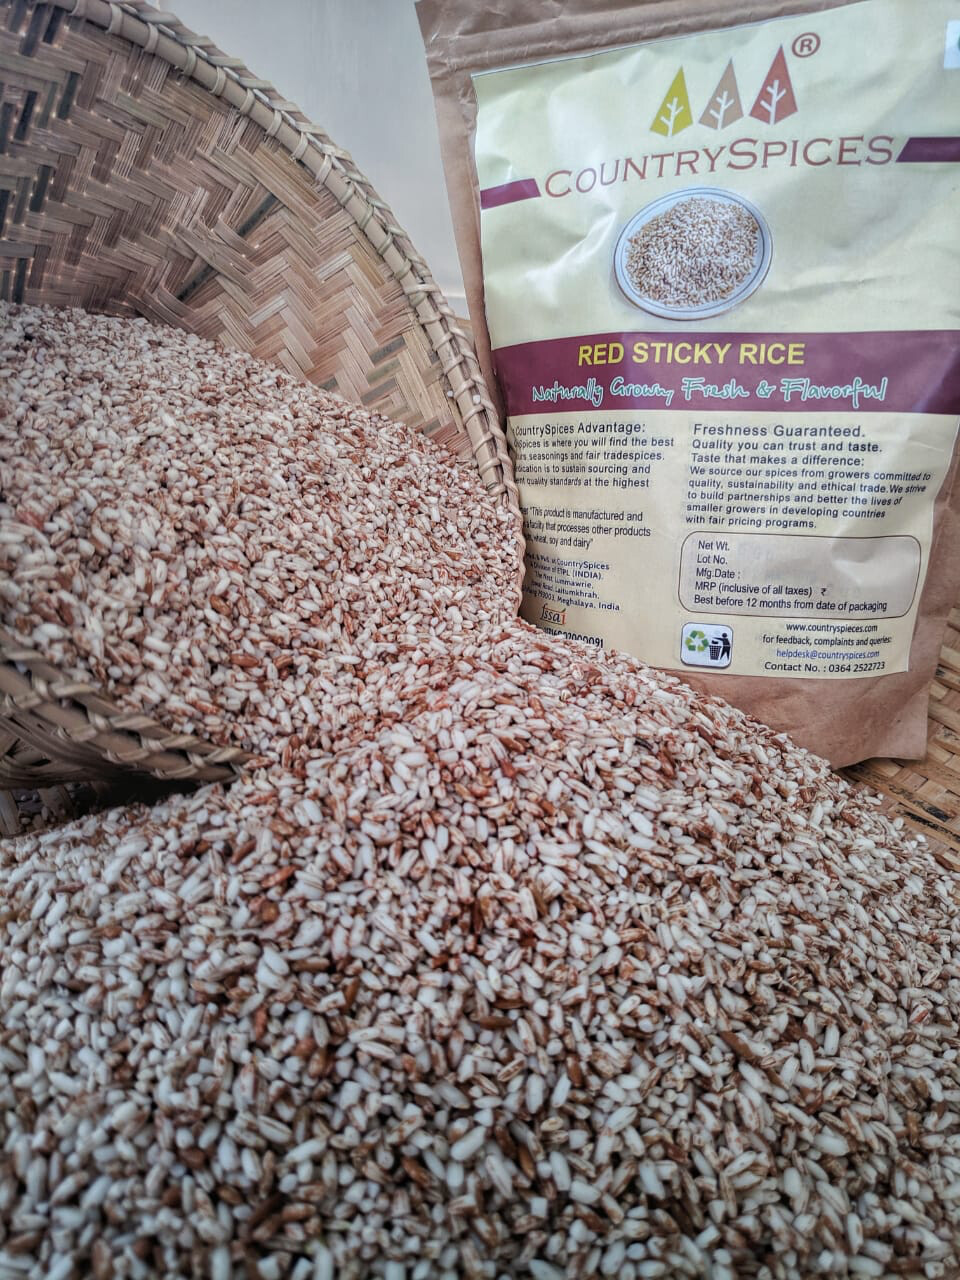 CountrySpices Red Sticky Rice